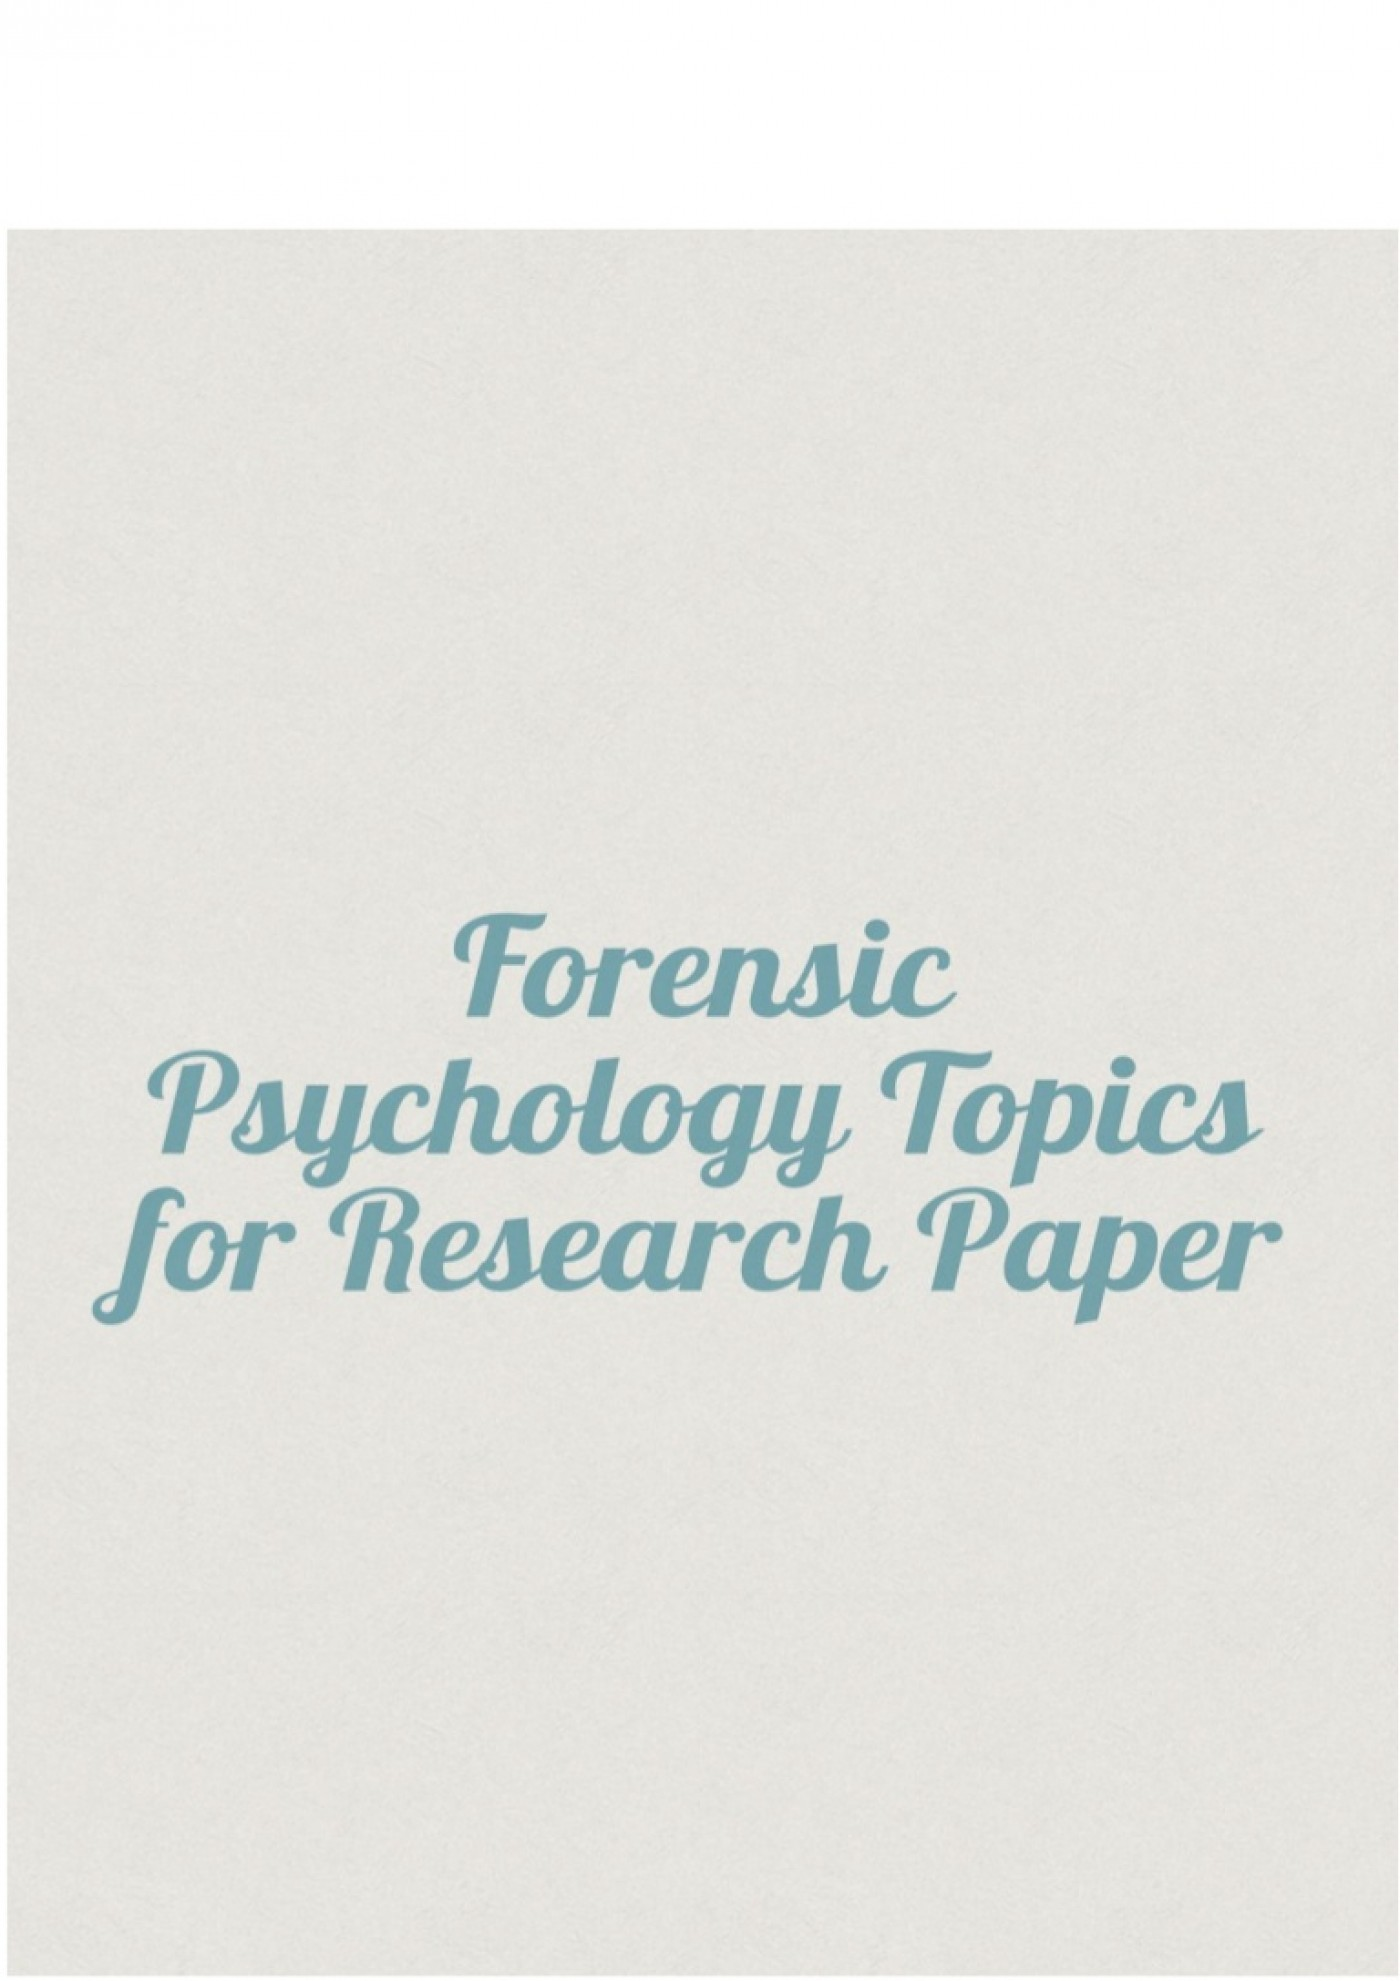 008 Psychology Topics For Research Paper Forensicpsychologytopicsforresearchpaper Thumbnail Wondrous Forensic Child Papers Controversial 1400